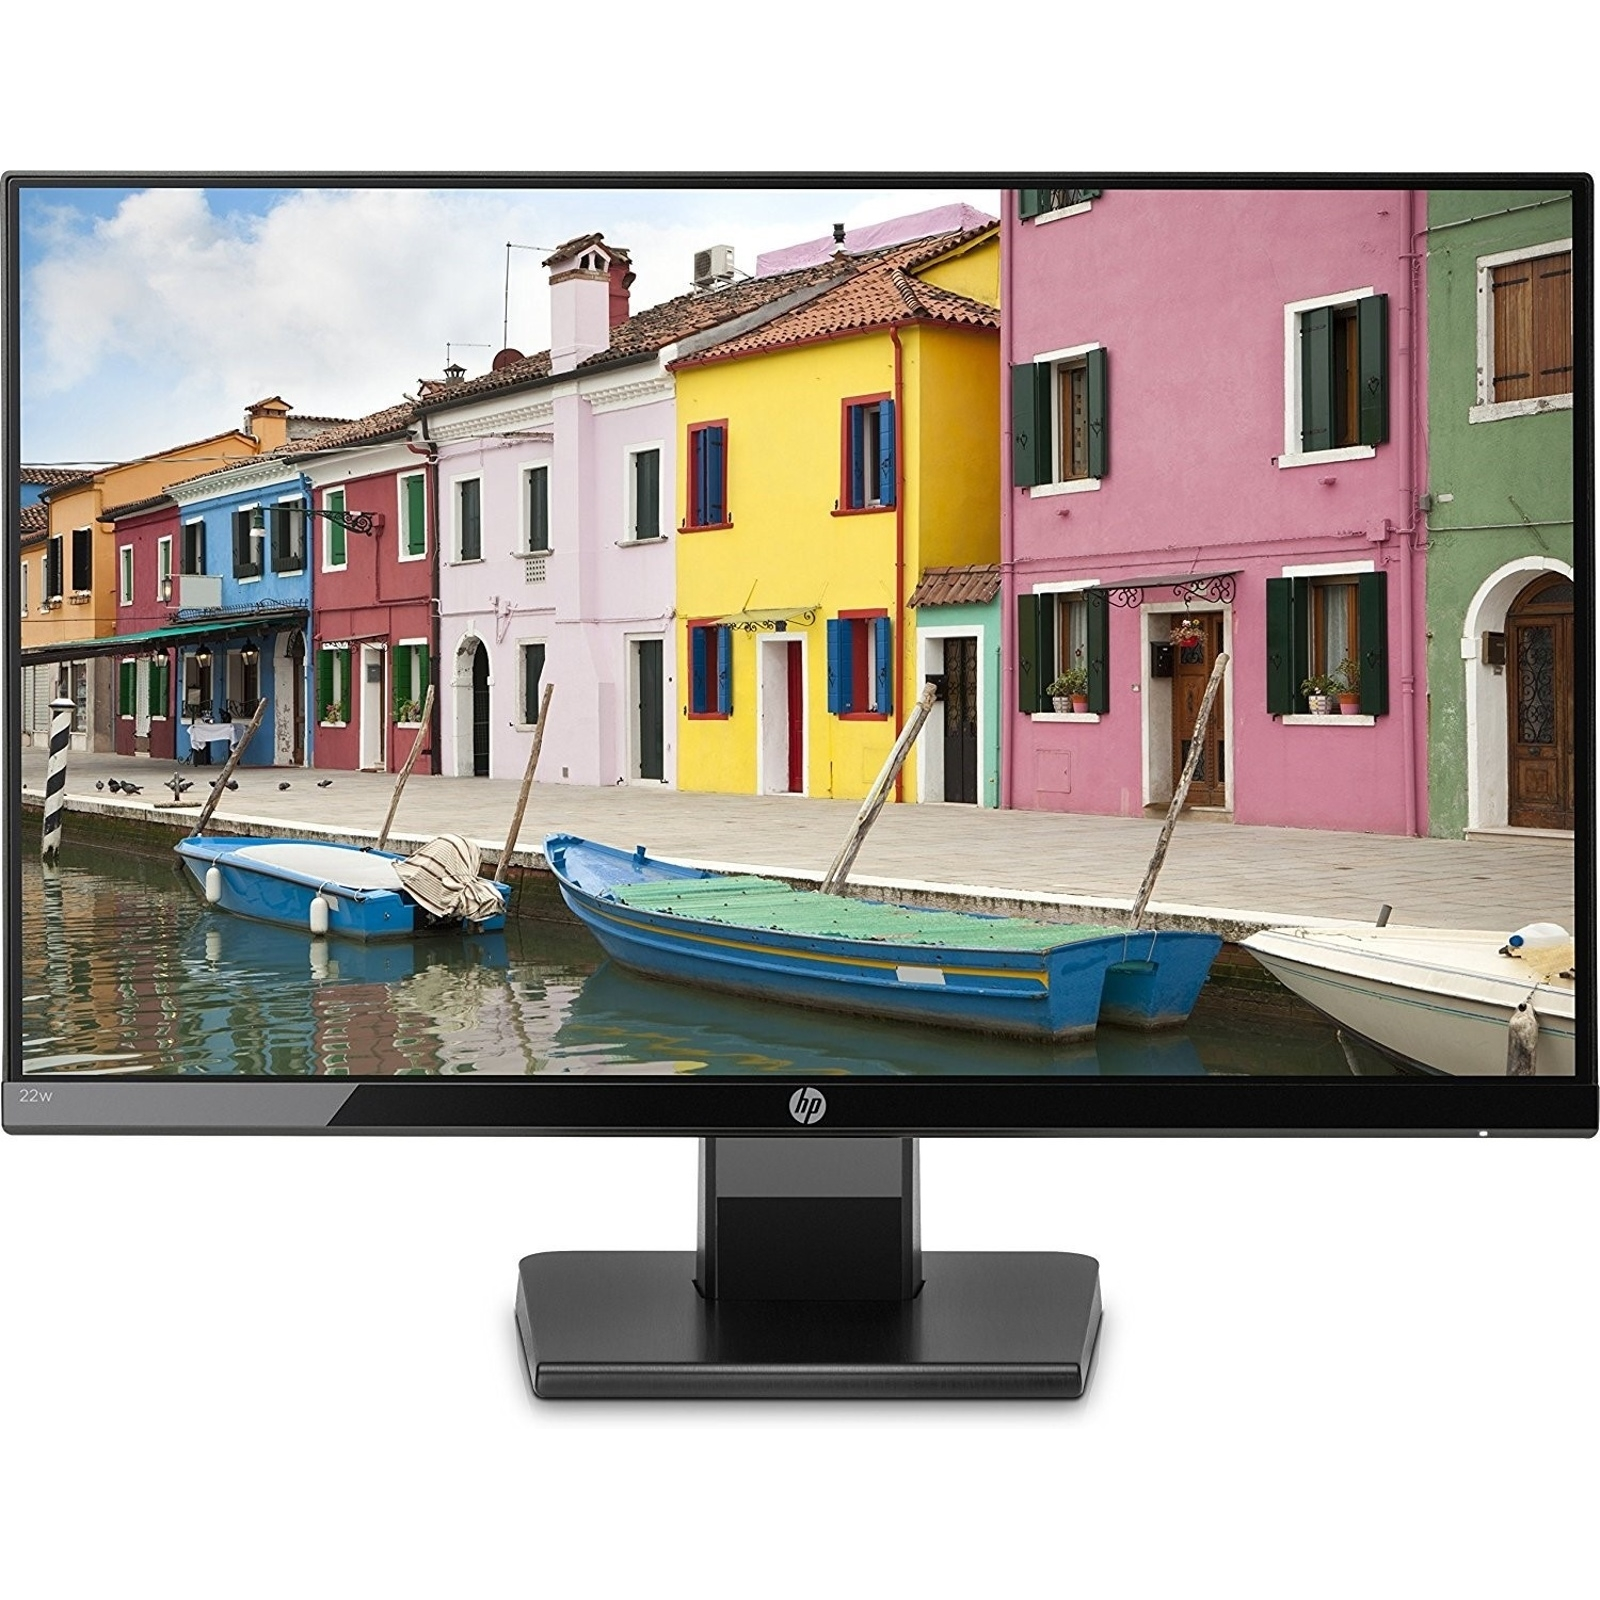 "HP 22W 1CA83AA 21.5"" 5MS 1920x1080 VGA/HDMI VESA SİYAH IPS LED MONITOR"